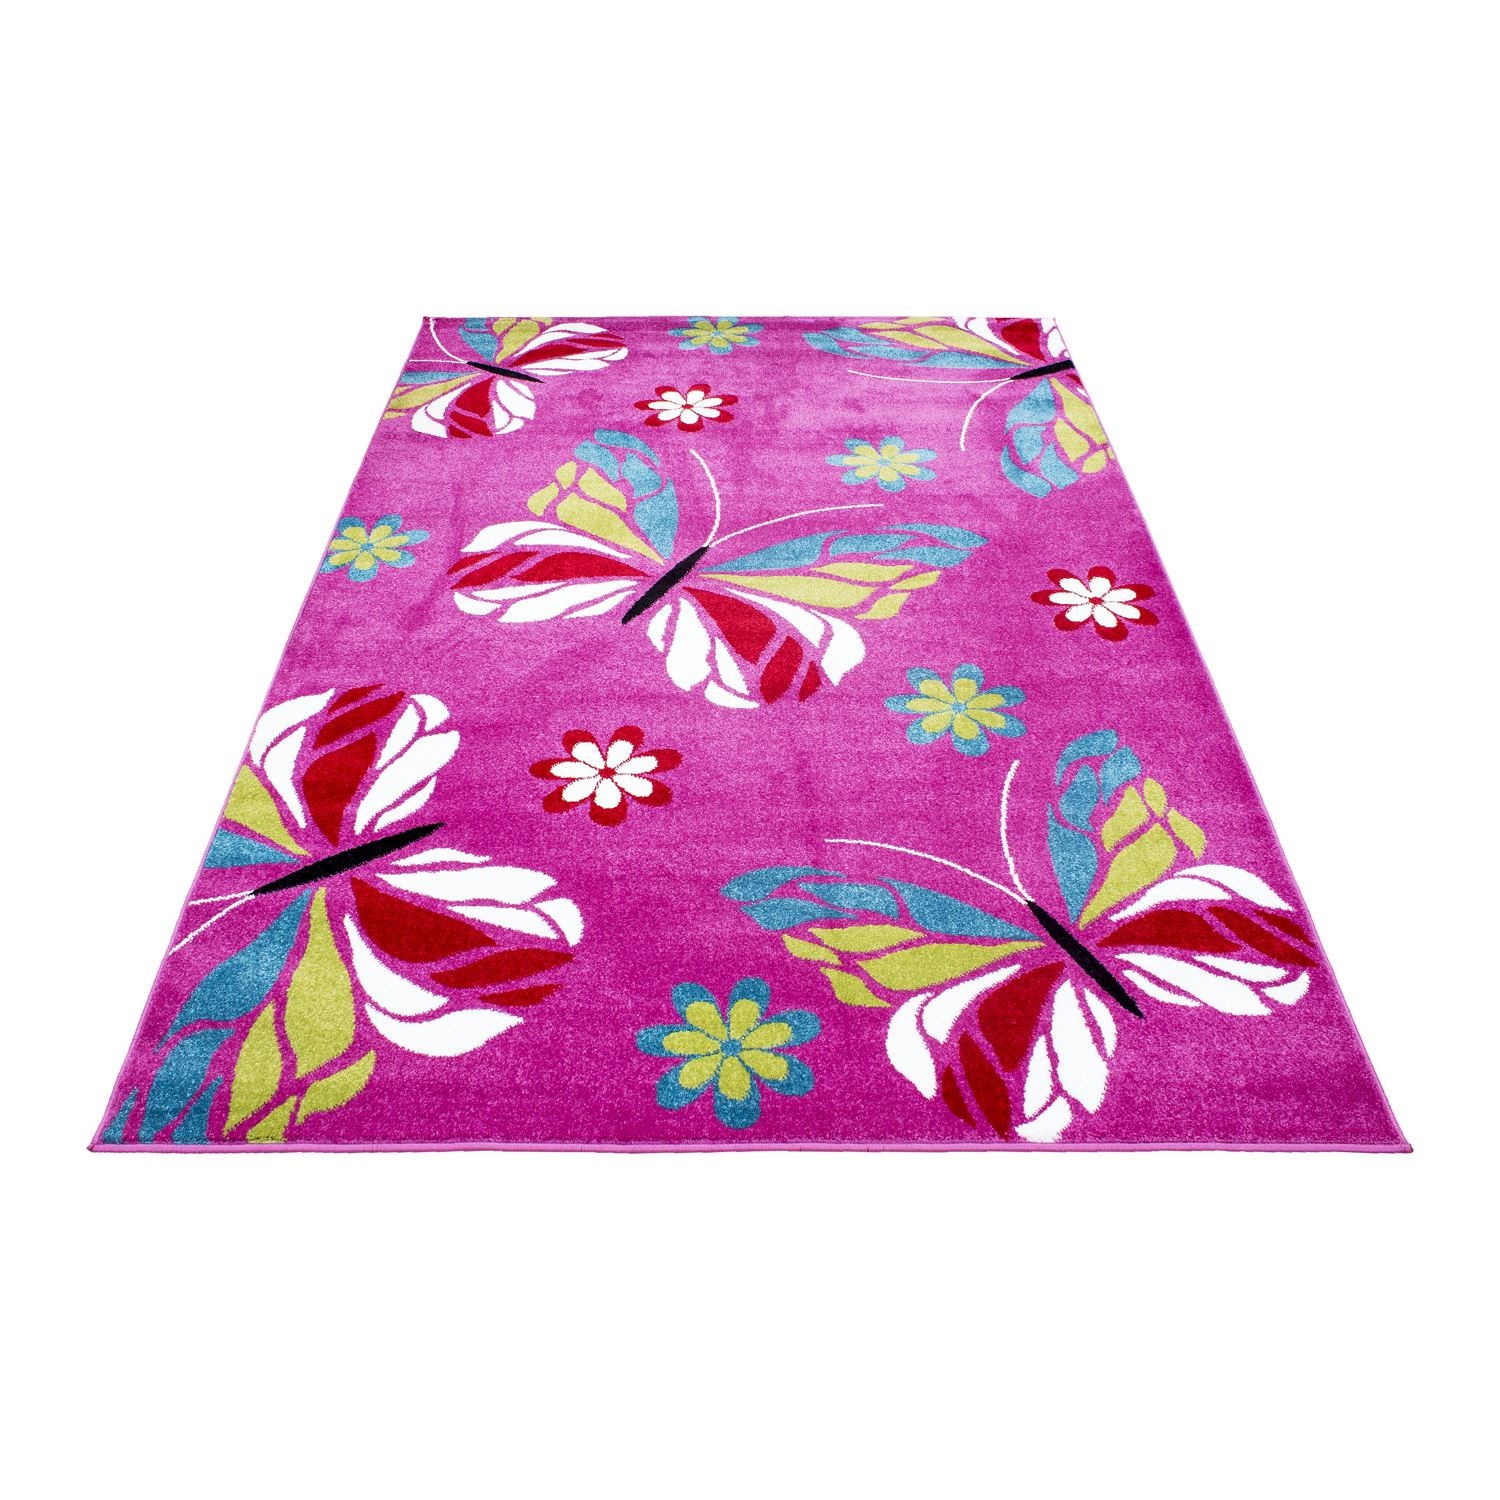 Rugs For Children's Rooms Kids Childrens Soft Quality Bedroom Blue Pink Car Rugs